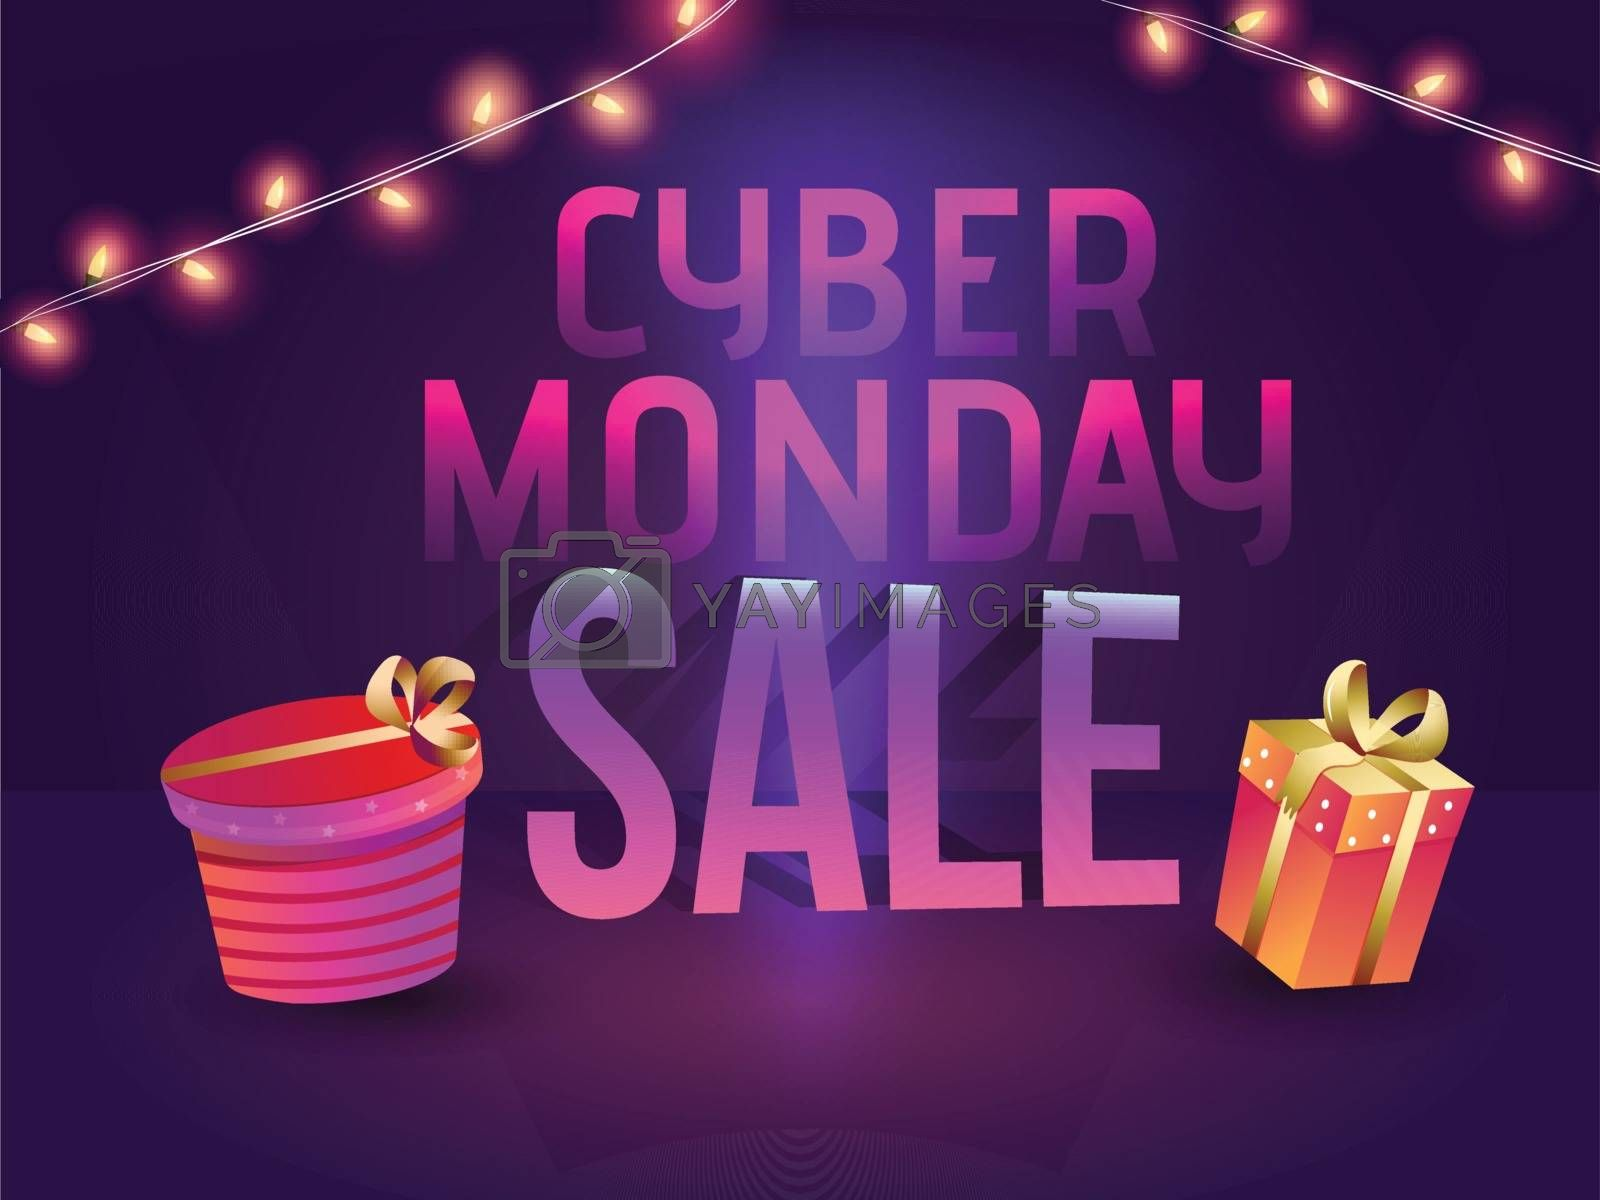 Illustration of gift boxes and lettering of Cyber Monday Sale on glossy purple background for poster or template design.